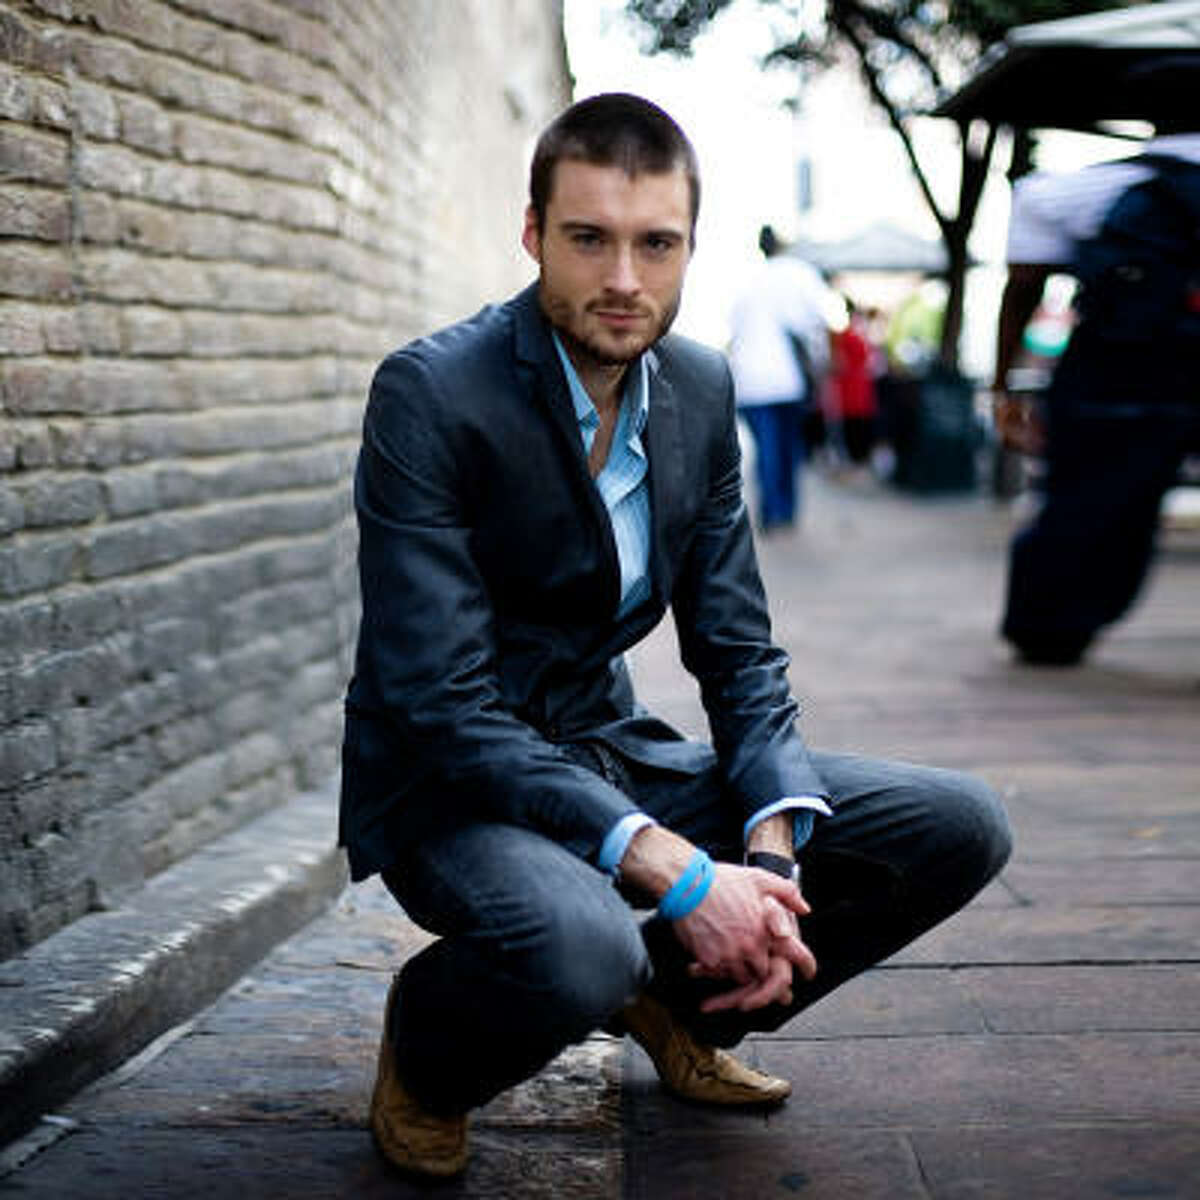 Pete Cashmore CEO/founder of Mashable.com Age: 23 This self-described